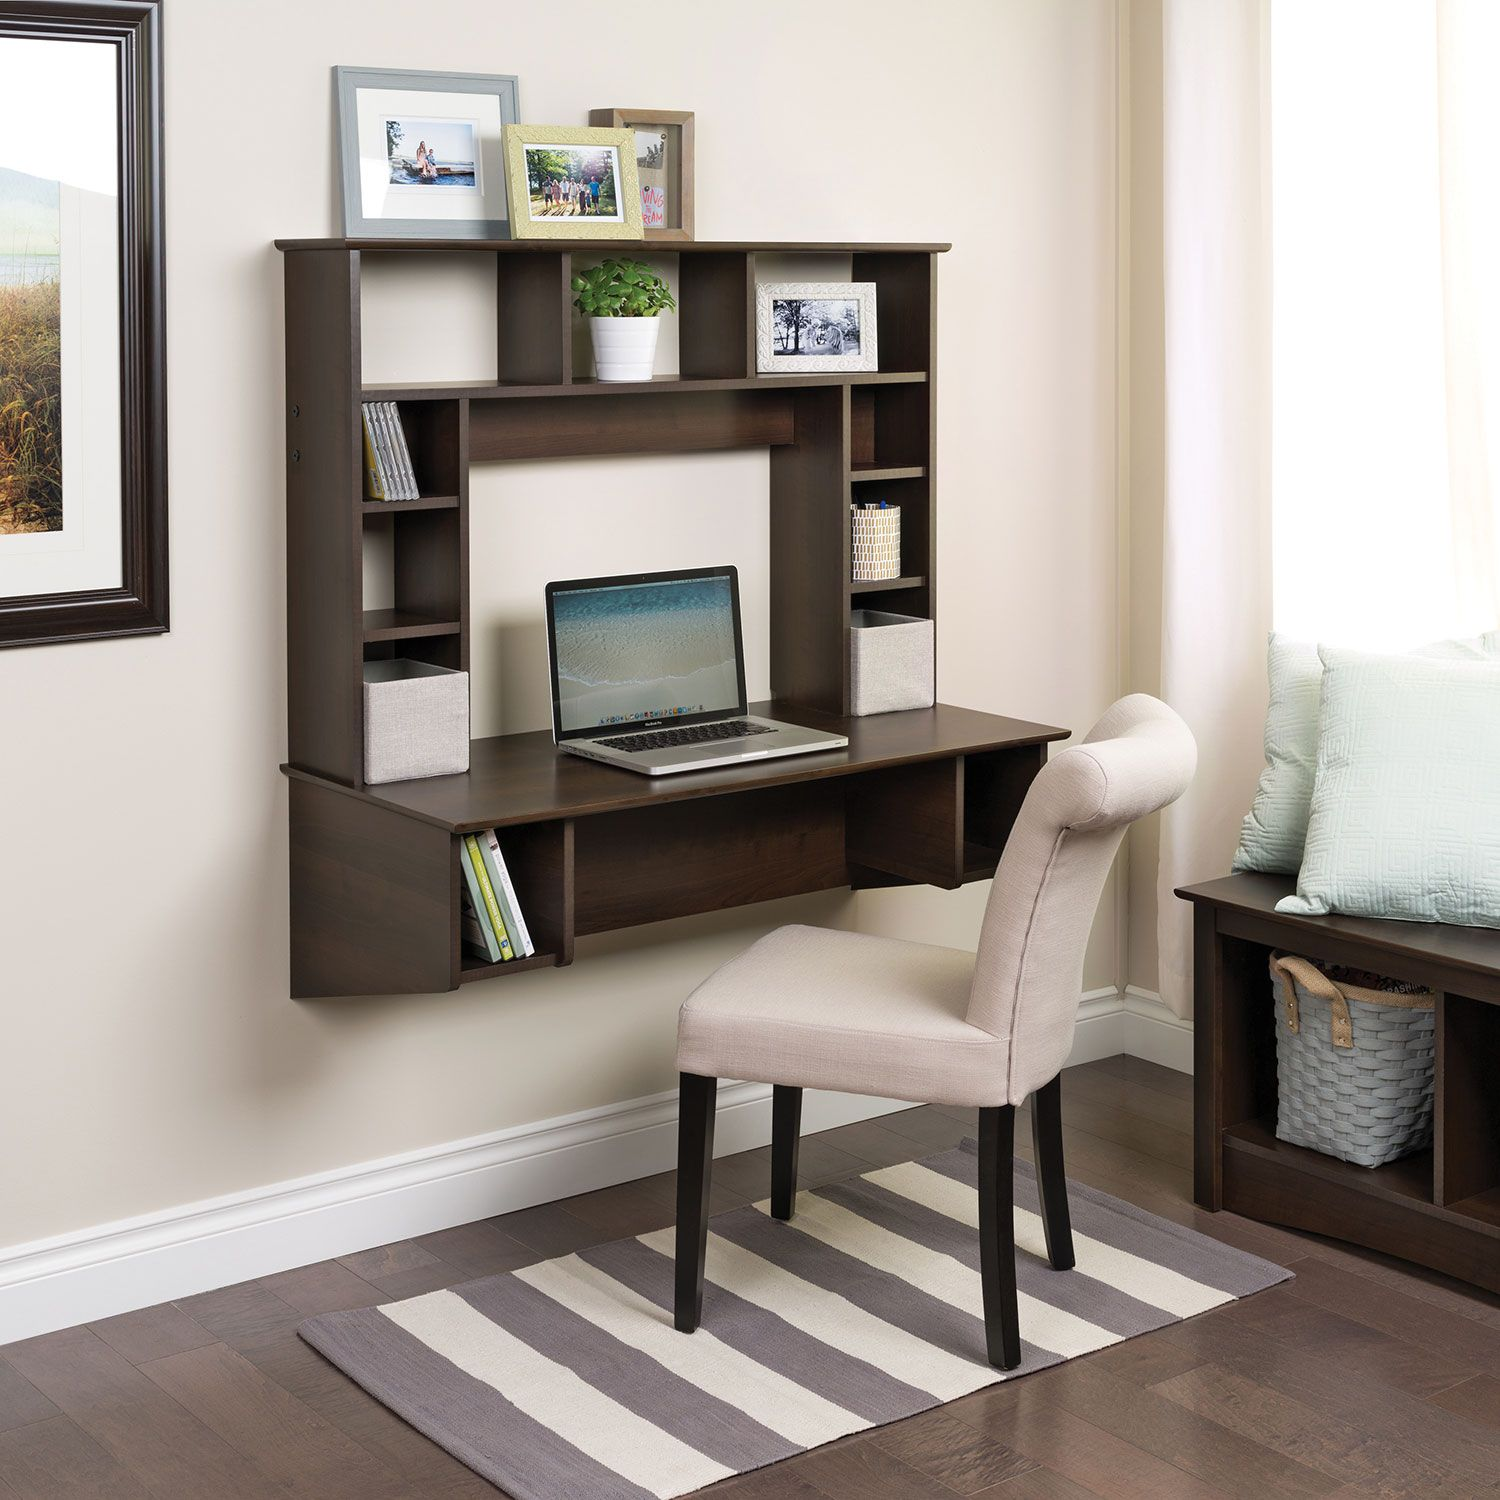 Sonoma Contemporary Wall Mounted Desk Espresso Desks Workstations Best Buy Canada Home Office Furniture Home Floating Desk